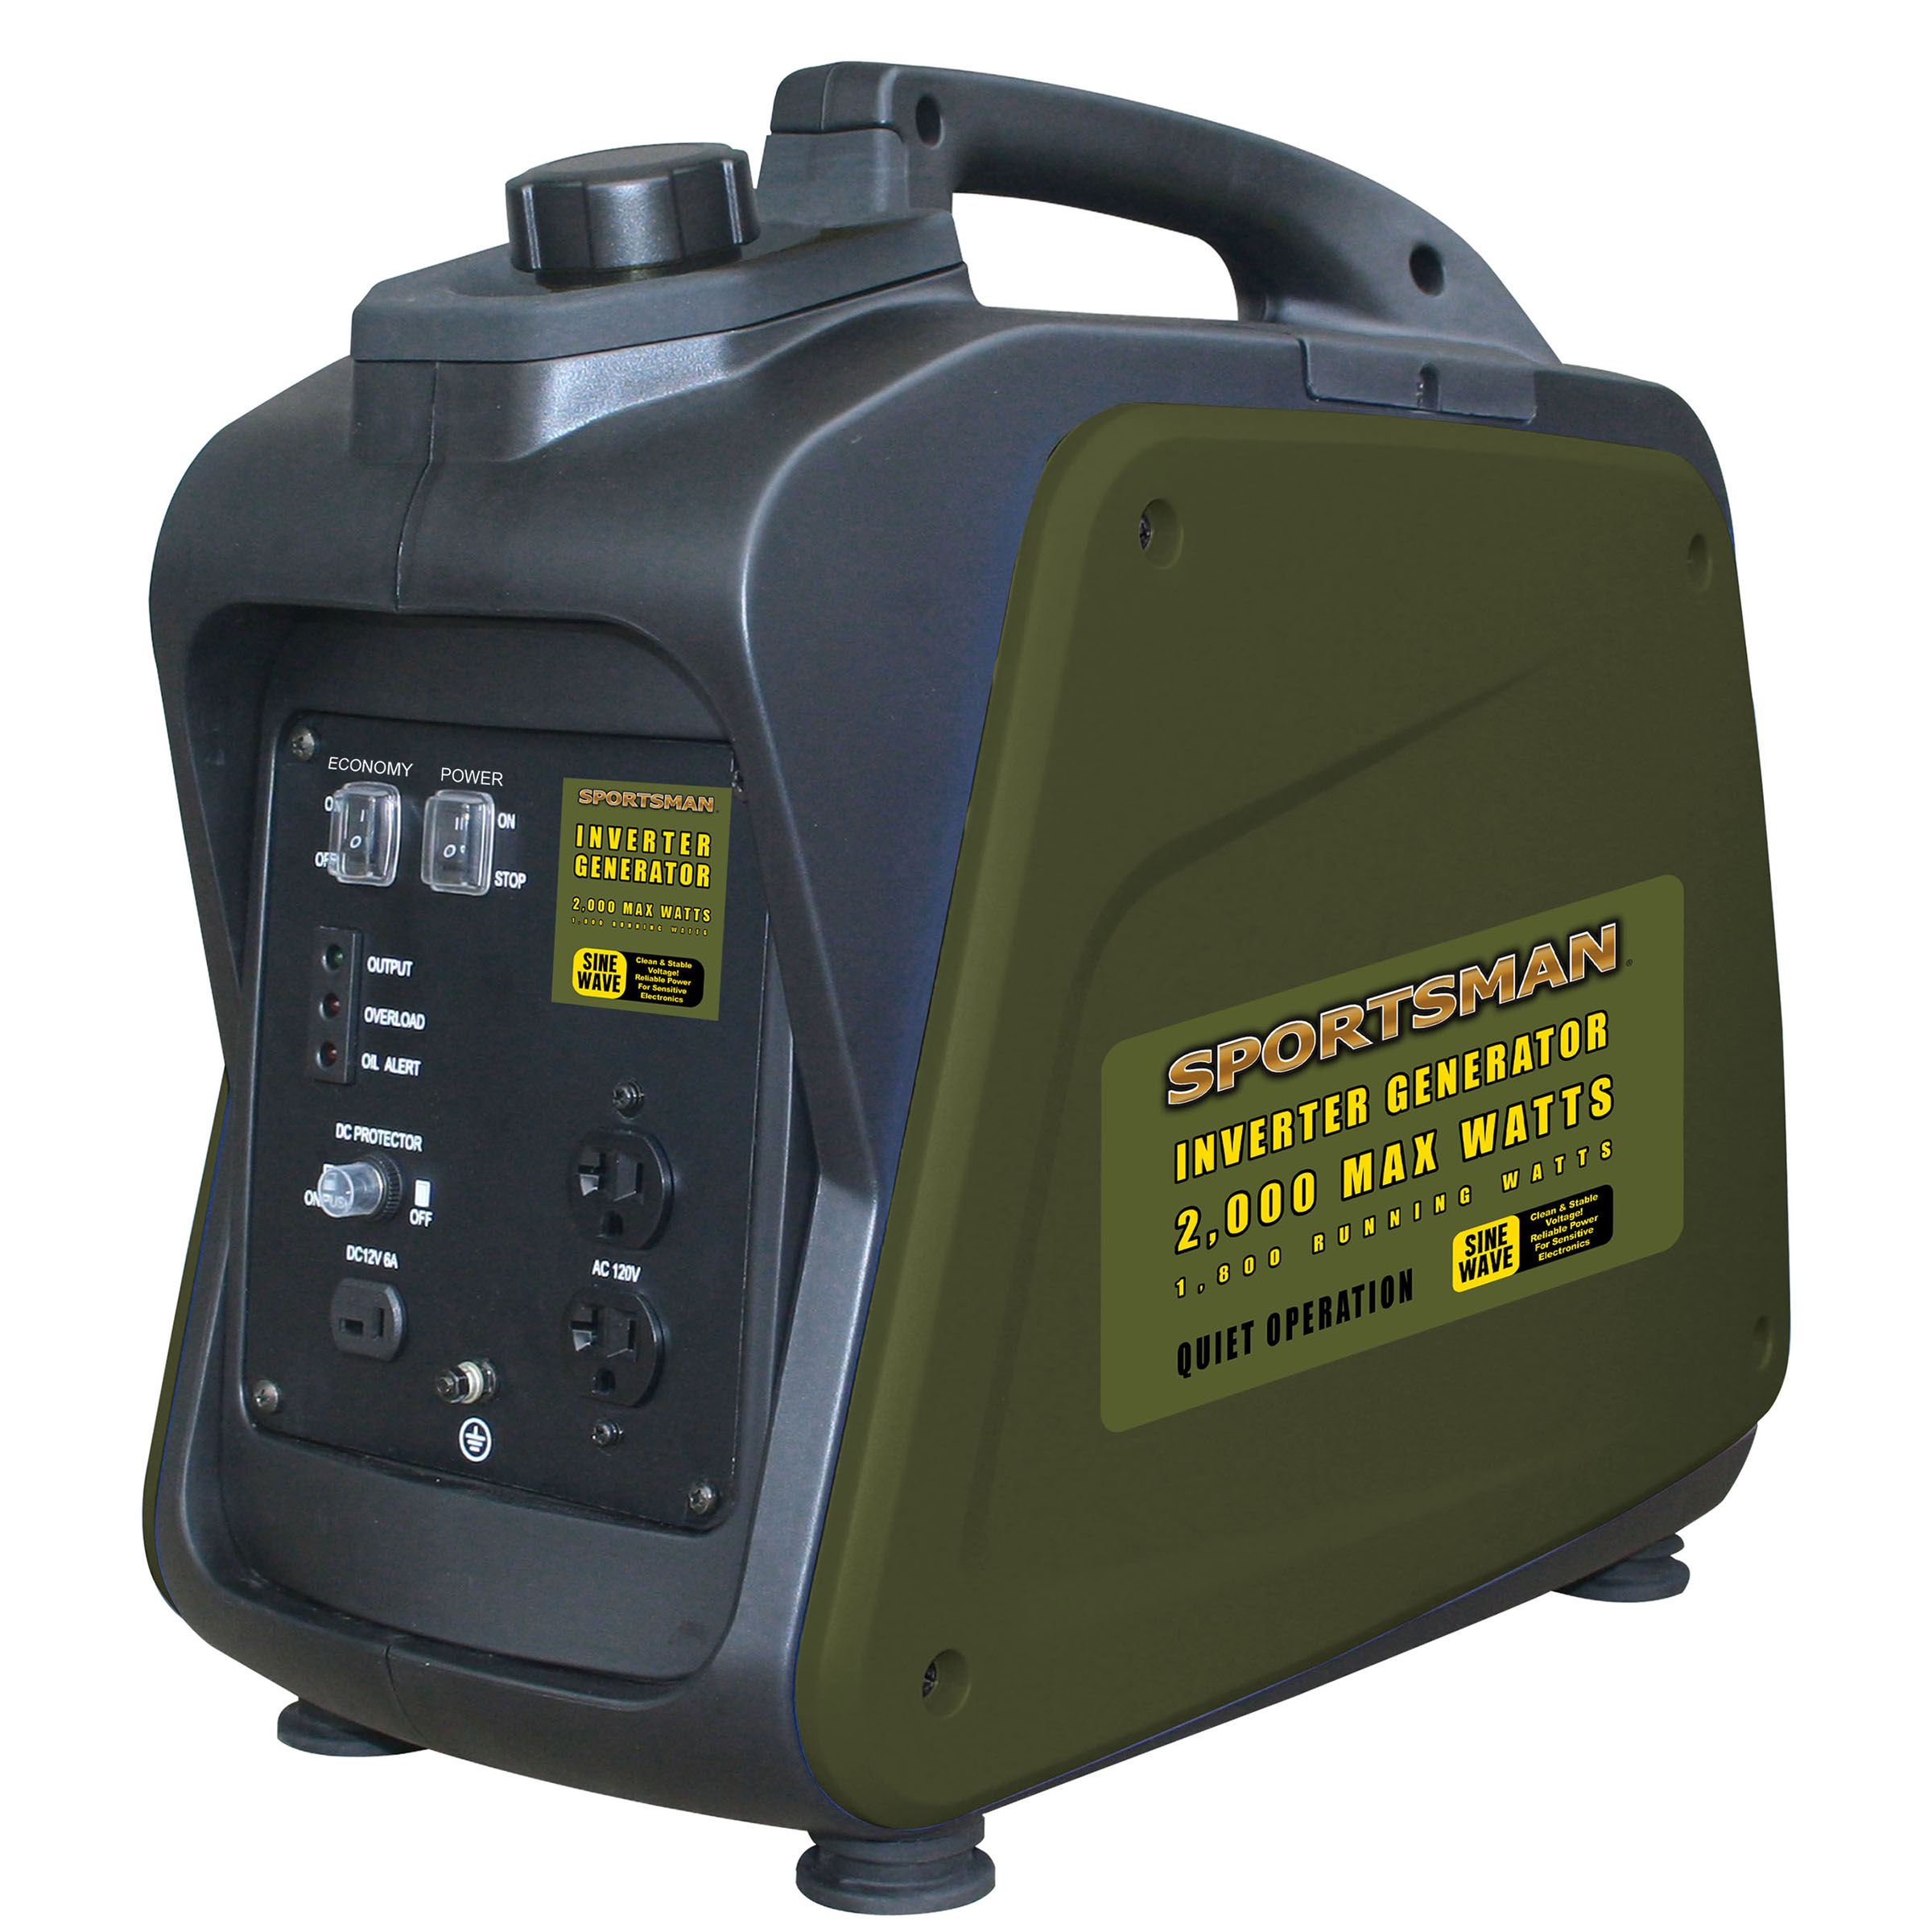 2000 Watt Inverter Generator for Sensitive Electronics